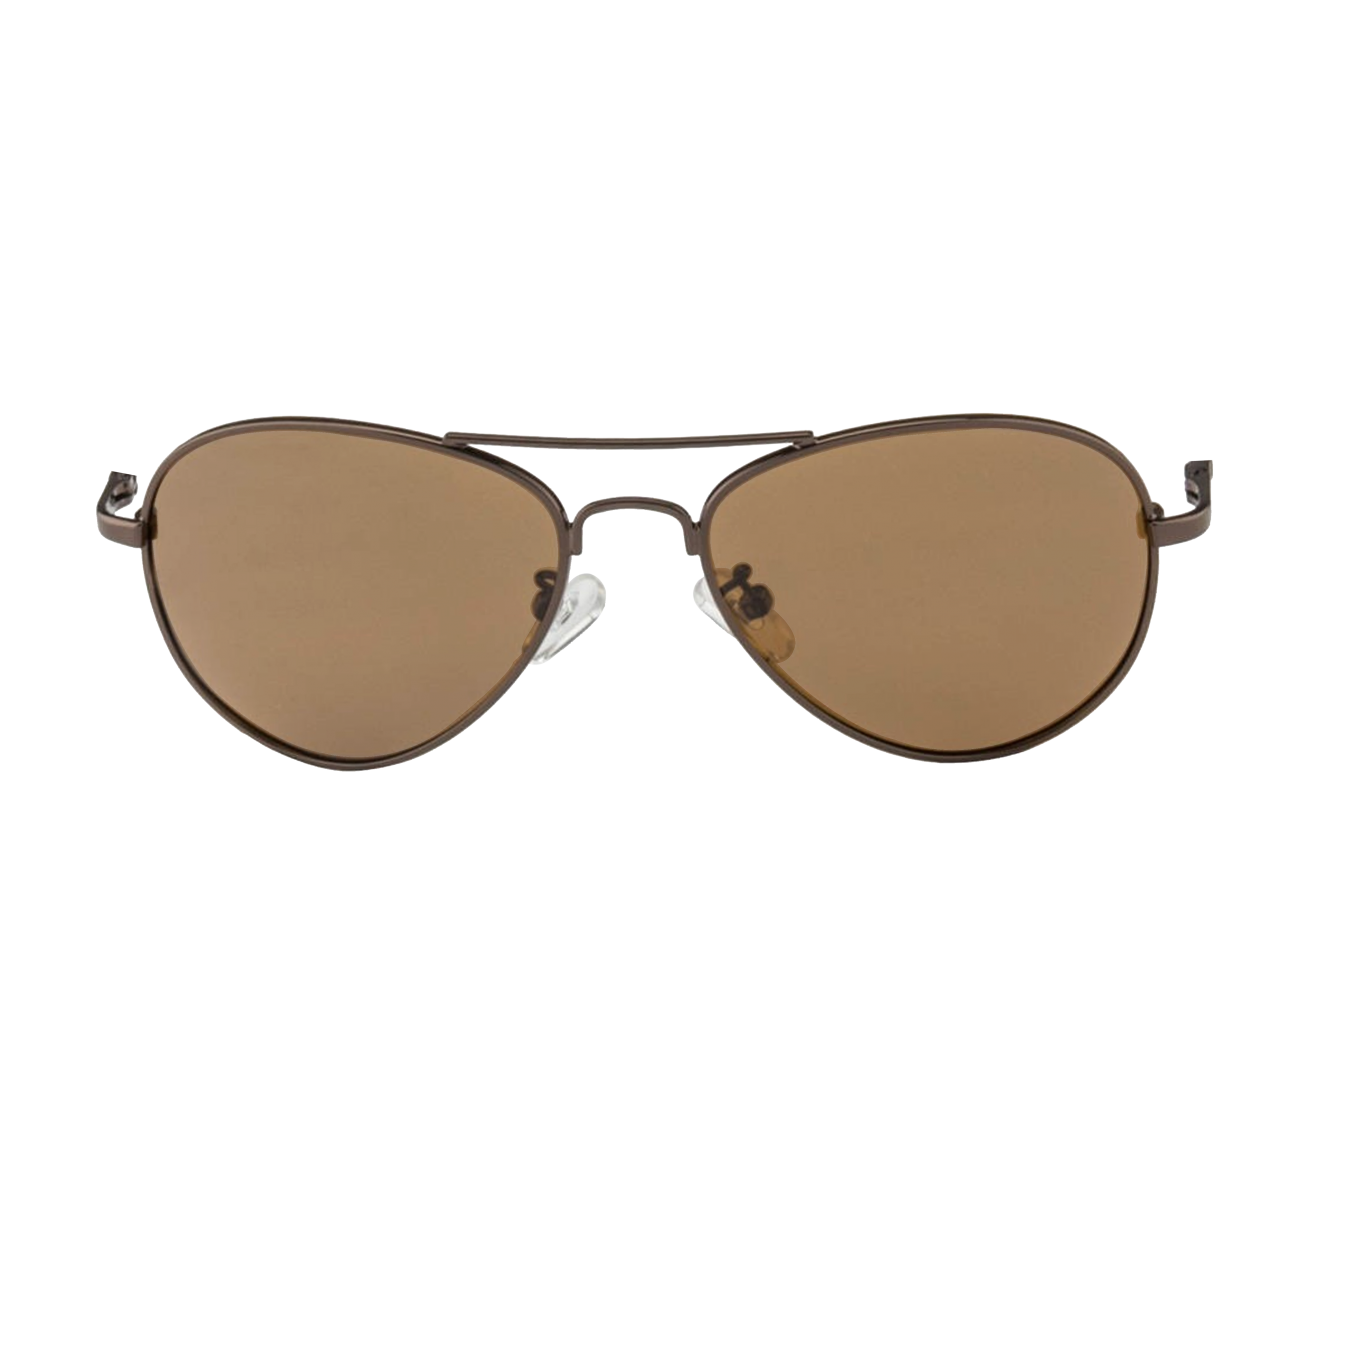 Sunglasses picture transparentpng . Aviator clipart aviator glass image free